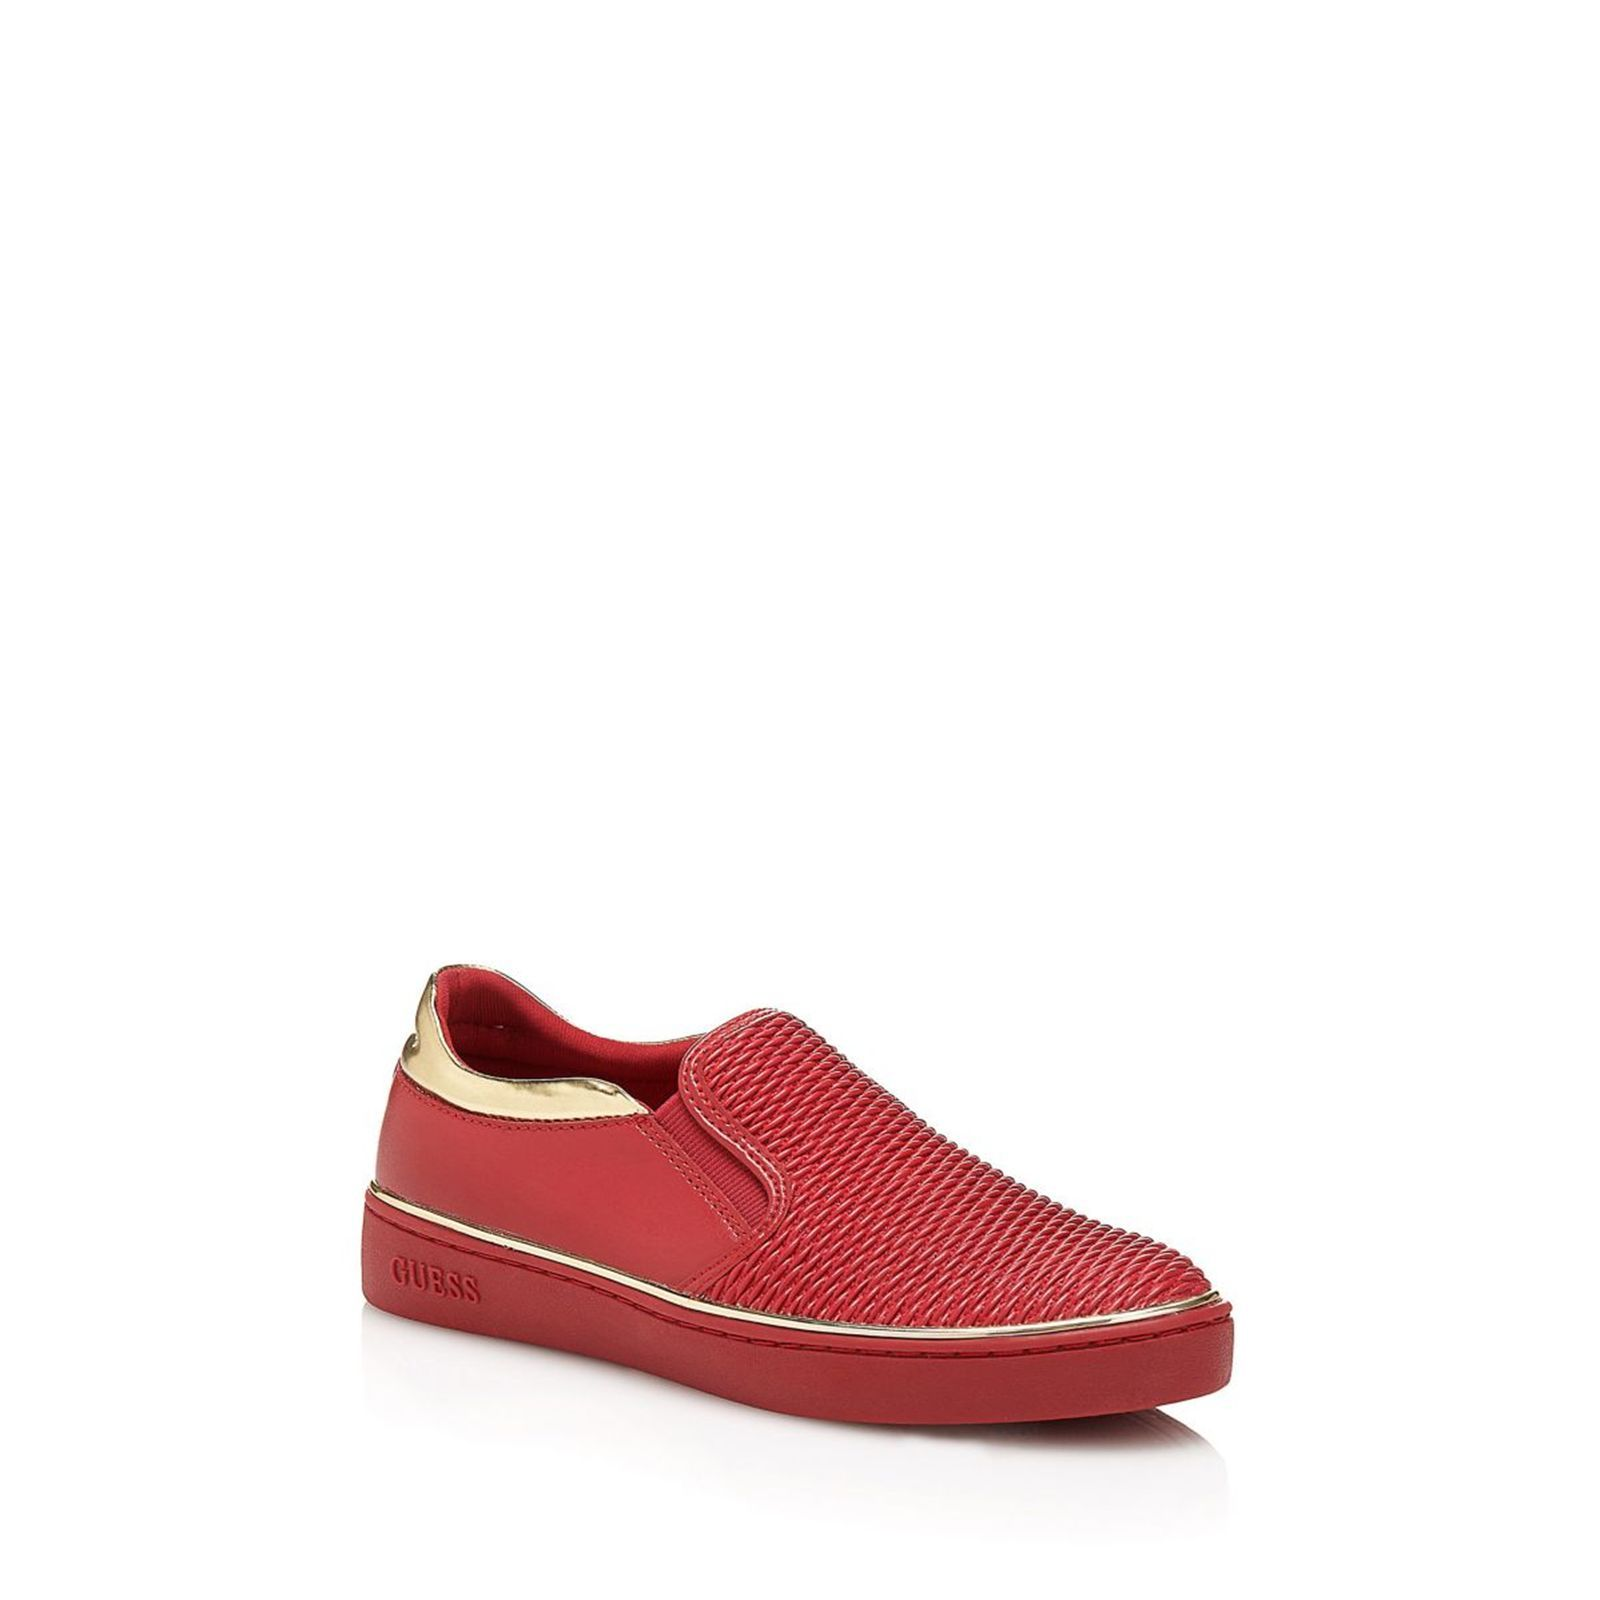 Guess Baskets/sneakers - rouge